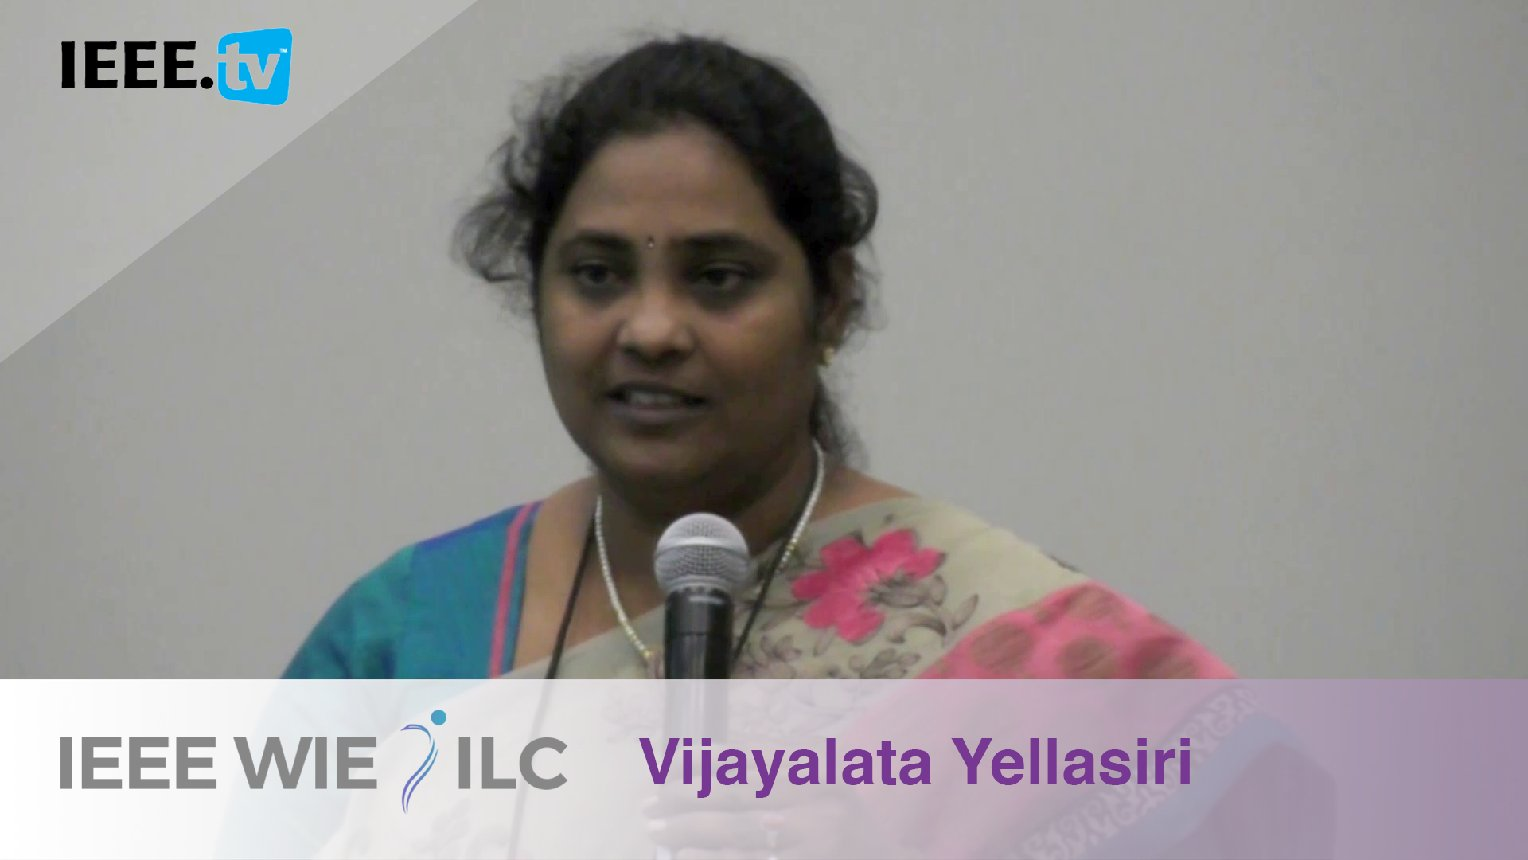 Vijayalata Yellasiri: Student Branch Affinity Group of the Year Winner - IEEE WIE ILC Awards 2017